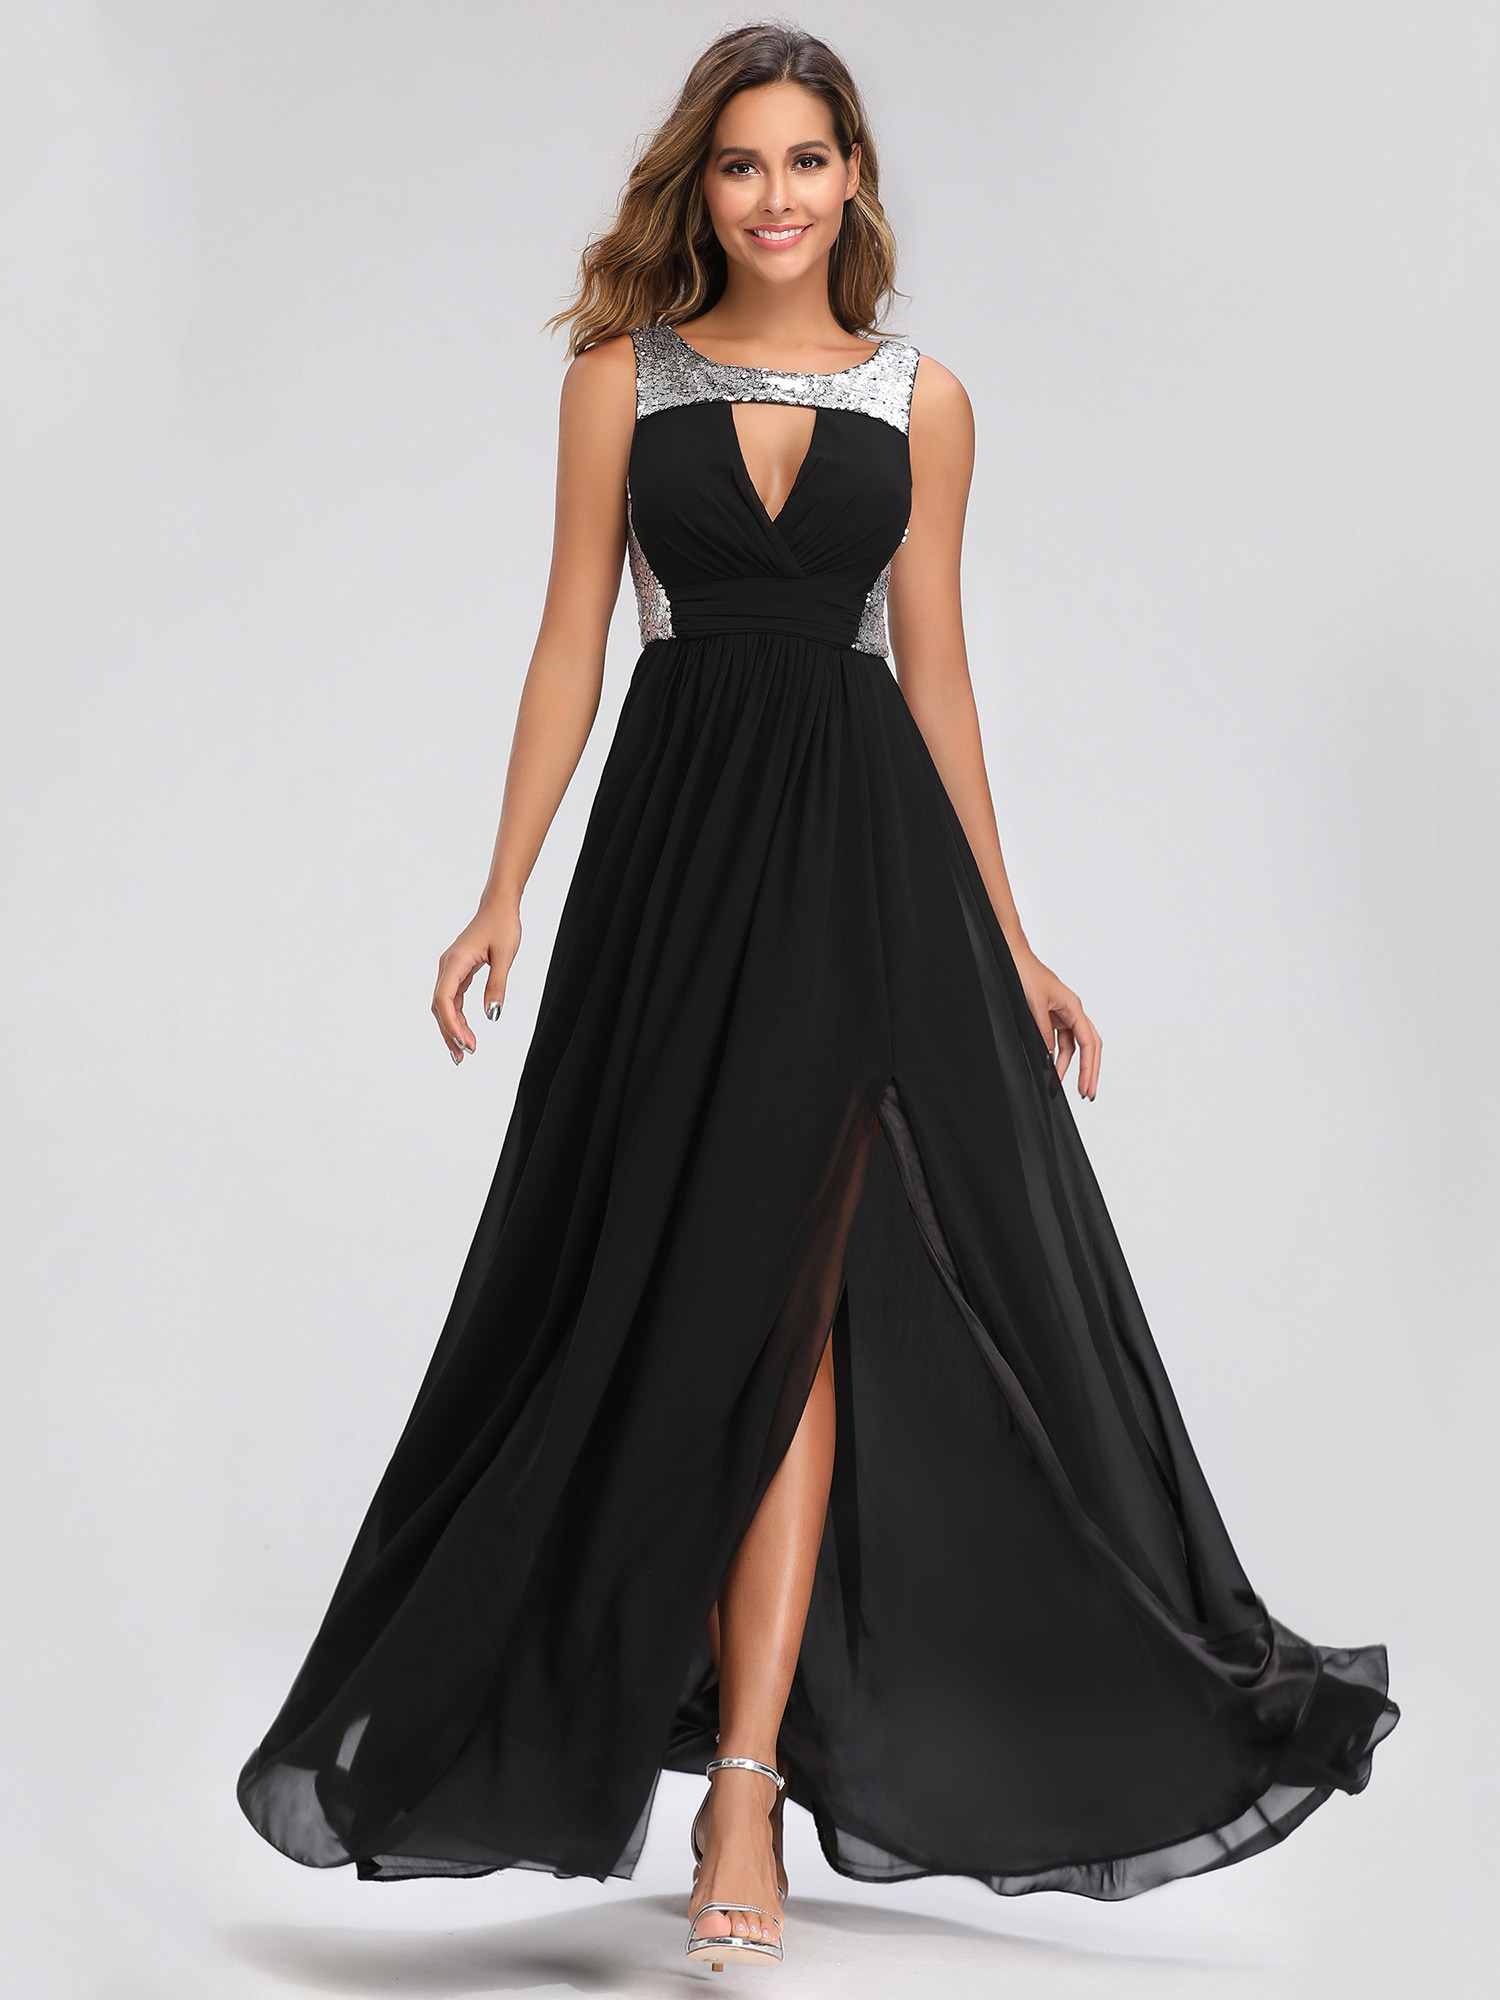 d83510ee69f Details about Ever-Pretty V-neck Long Sequins Prom Dresses Formal Evening  Party Dress Cocktail